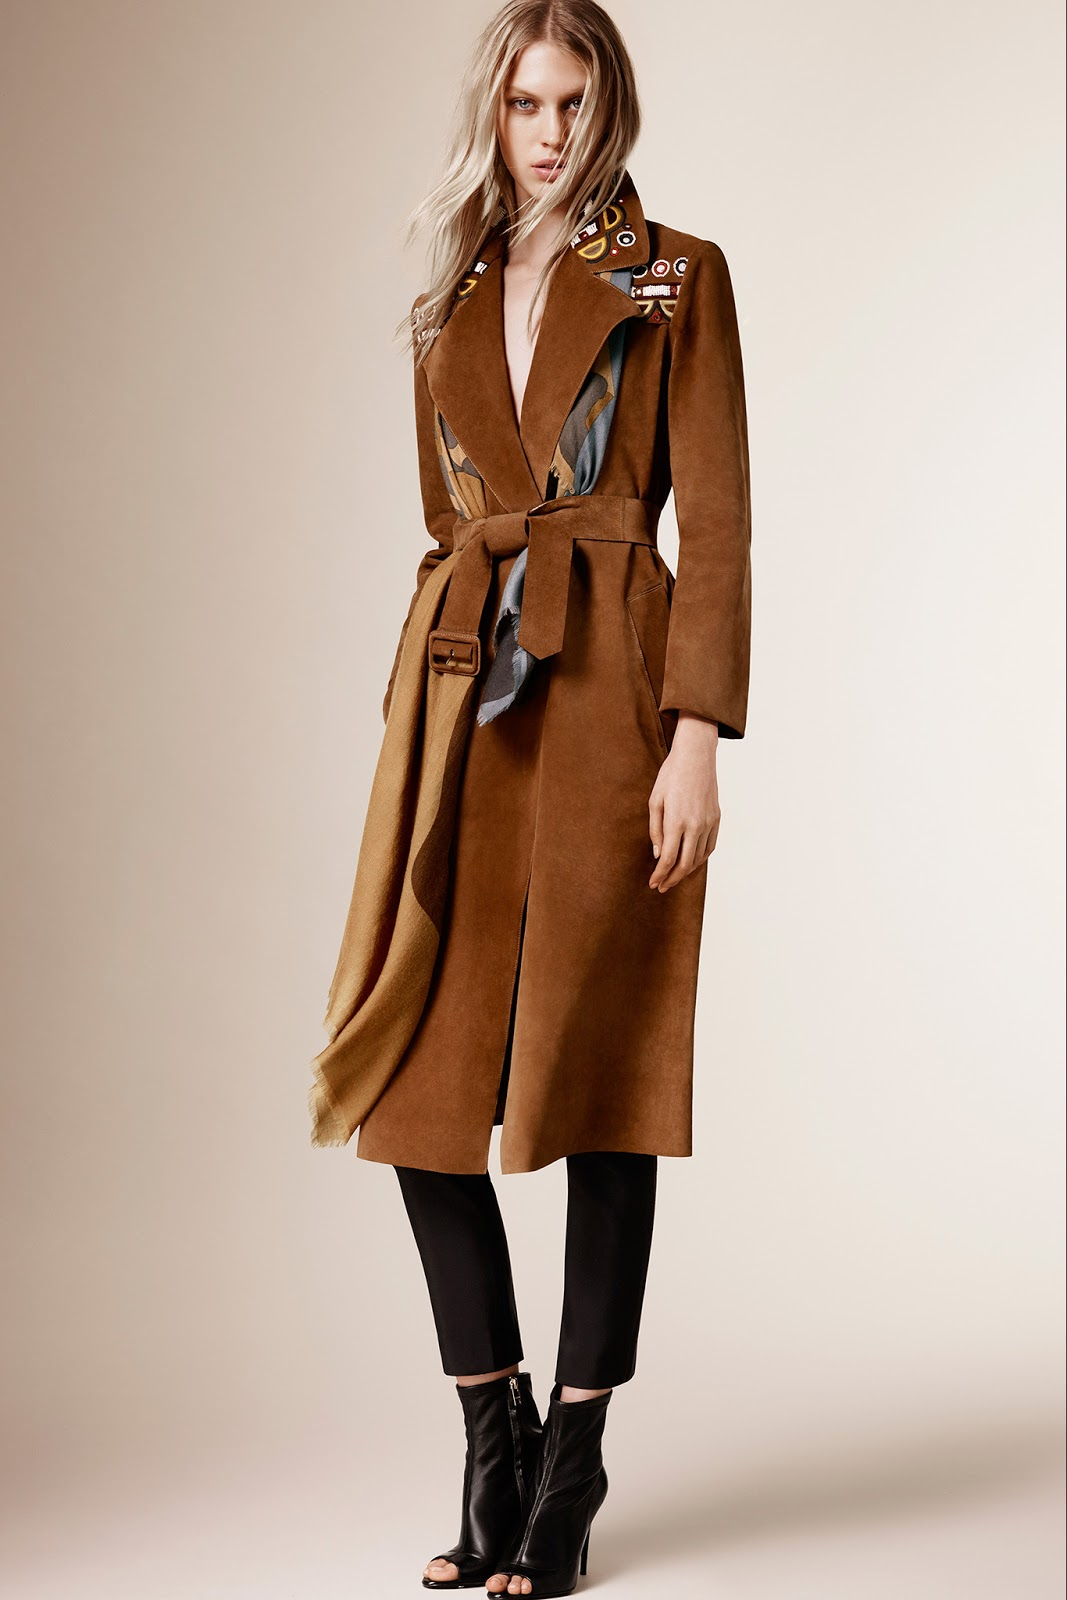 via fashioned by love | Burberry Prorsum Pre-Fall 2015 | camel trends | 2015